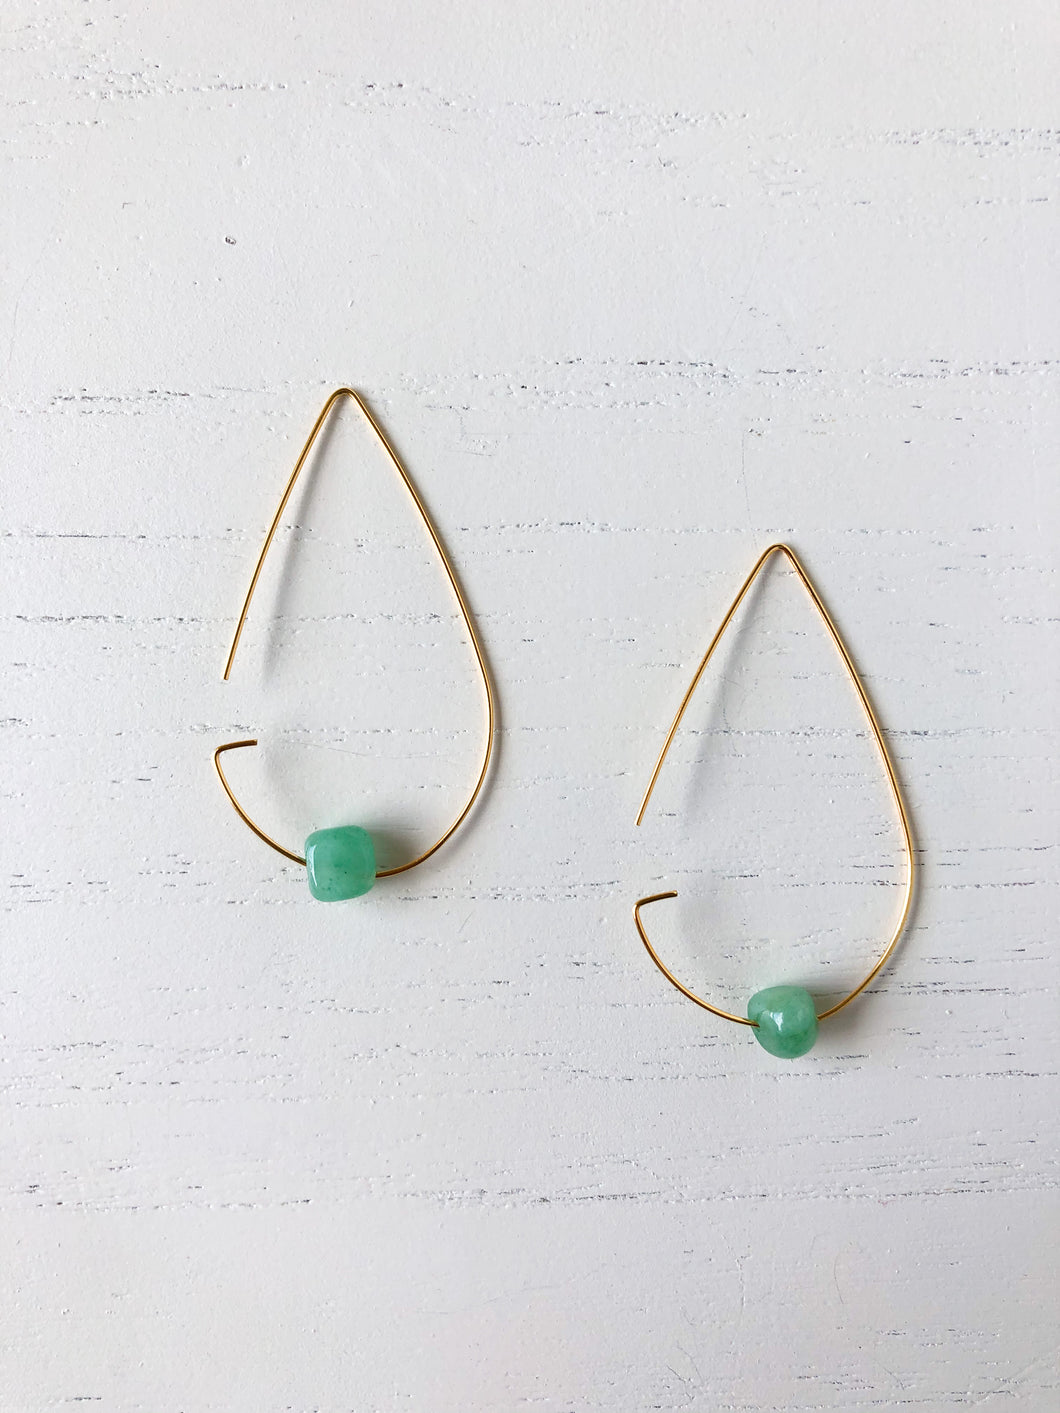 Brass Tear Drop Threader Earrings - Jade